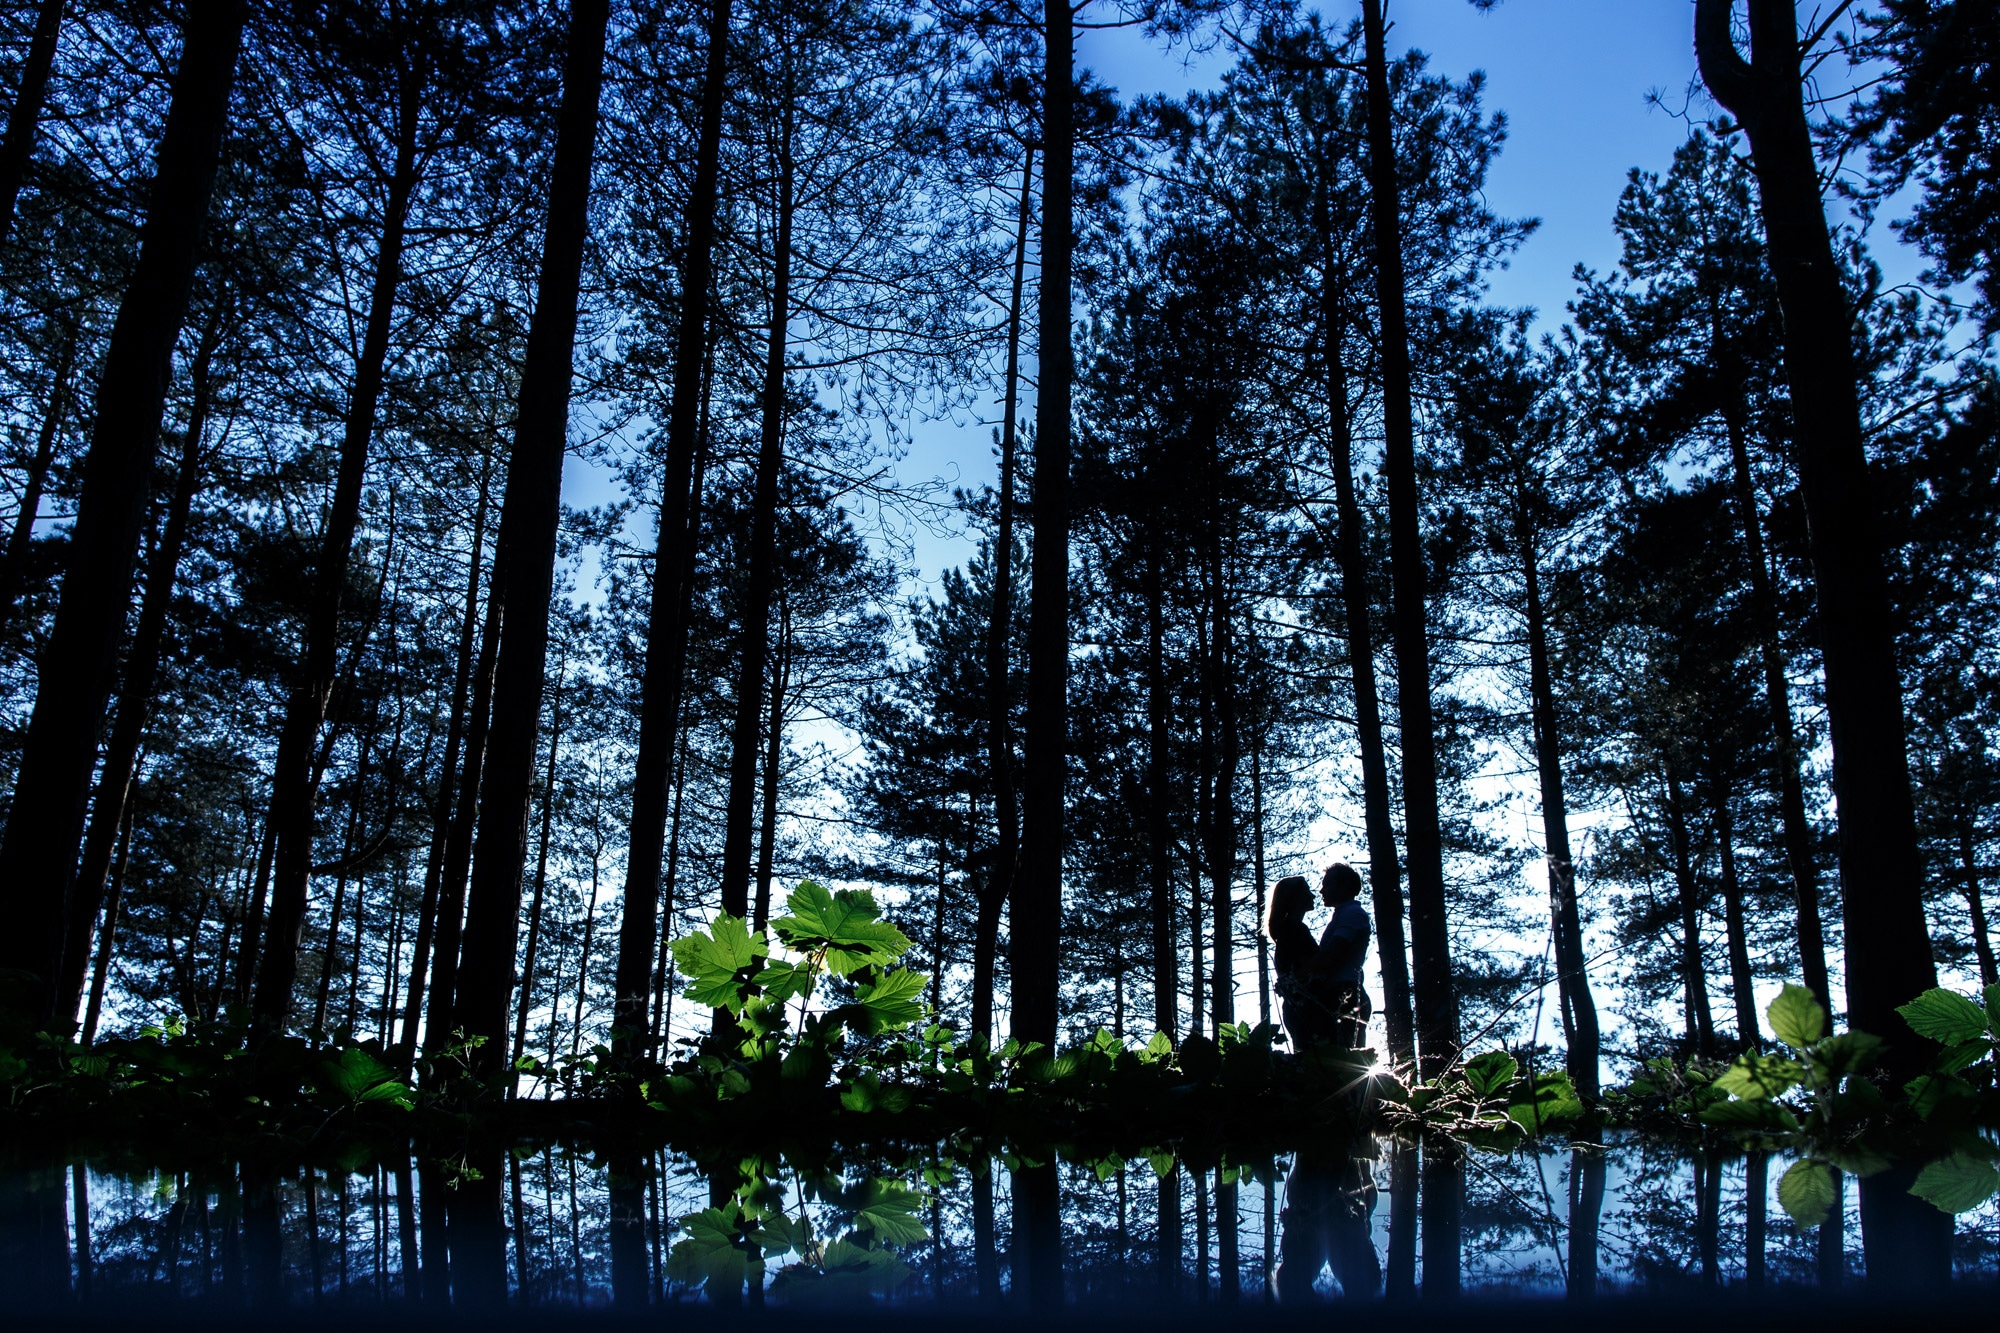 Creative silhouette of couple hidden in the forest at Formby Point